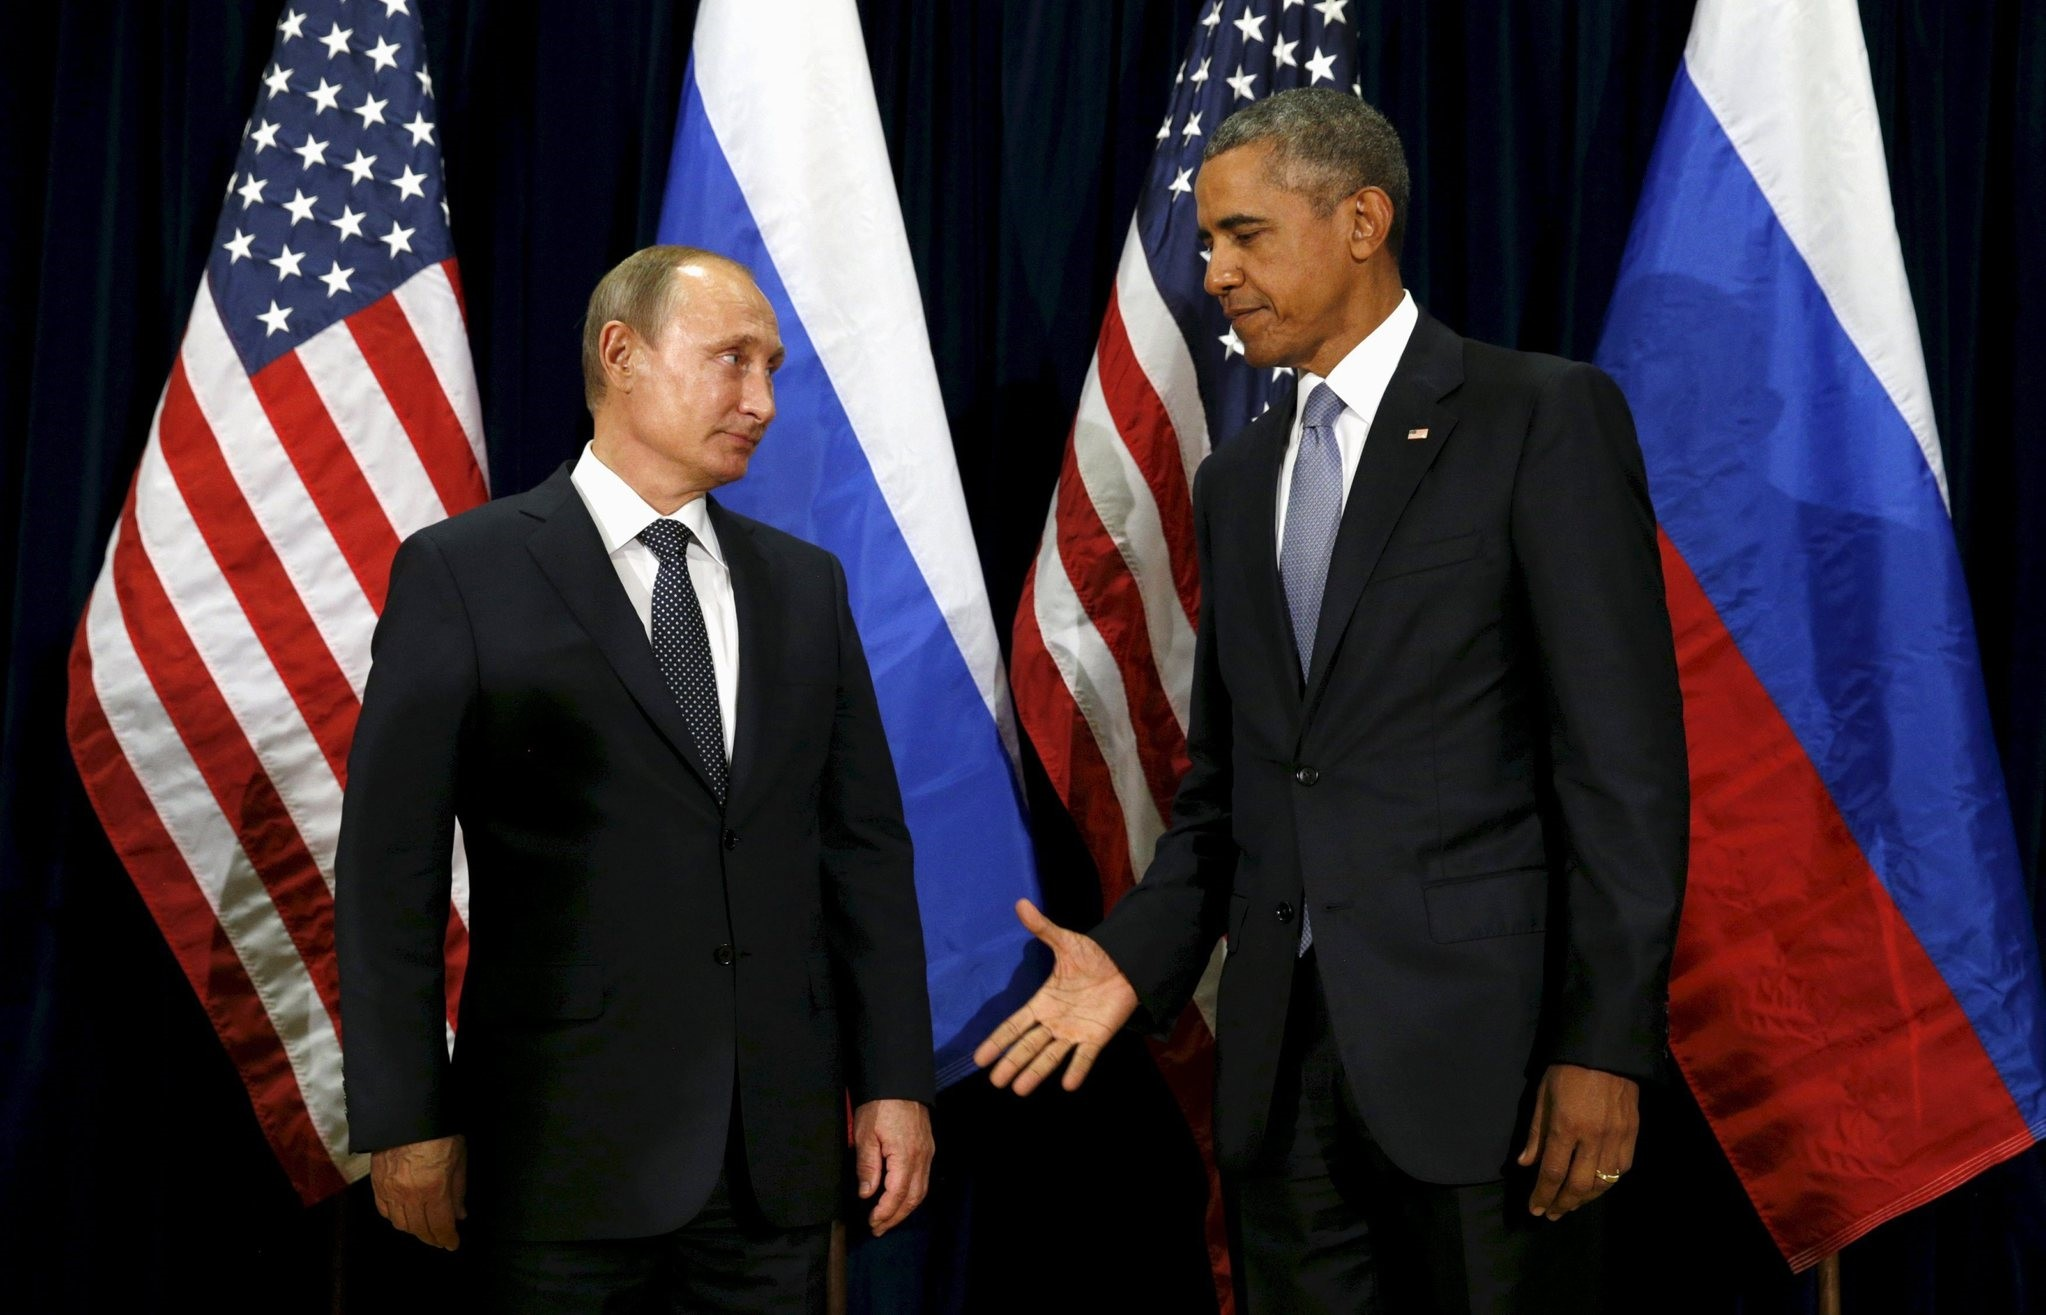 U.S. President Barack Obama extends his hand to Russian President Vladimir Putin during their meeting at the United Nations General Assembly in New York September 28, 2015. (REUTERS Photo)